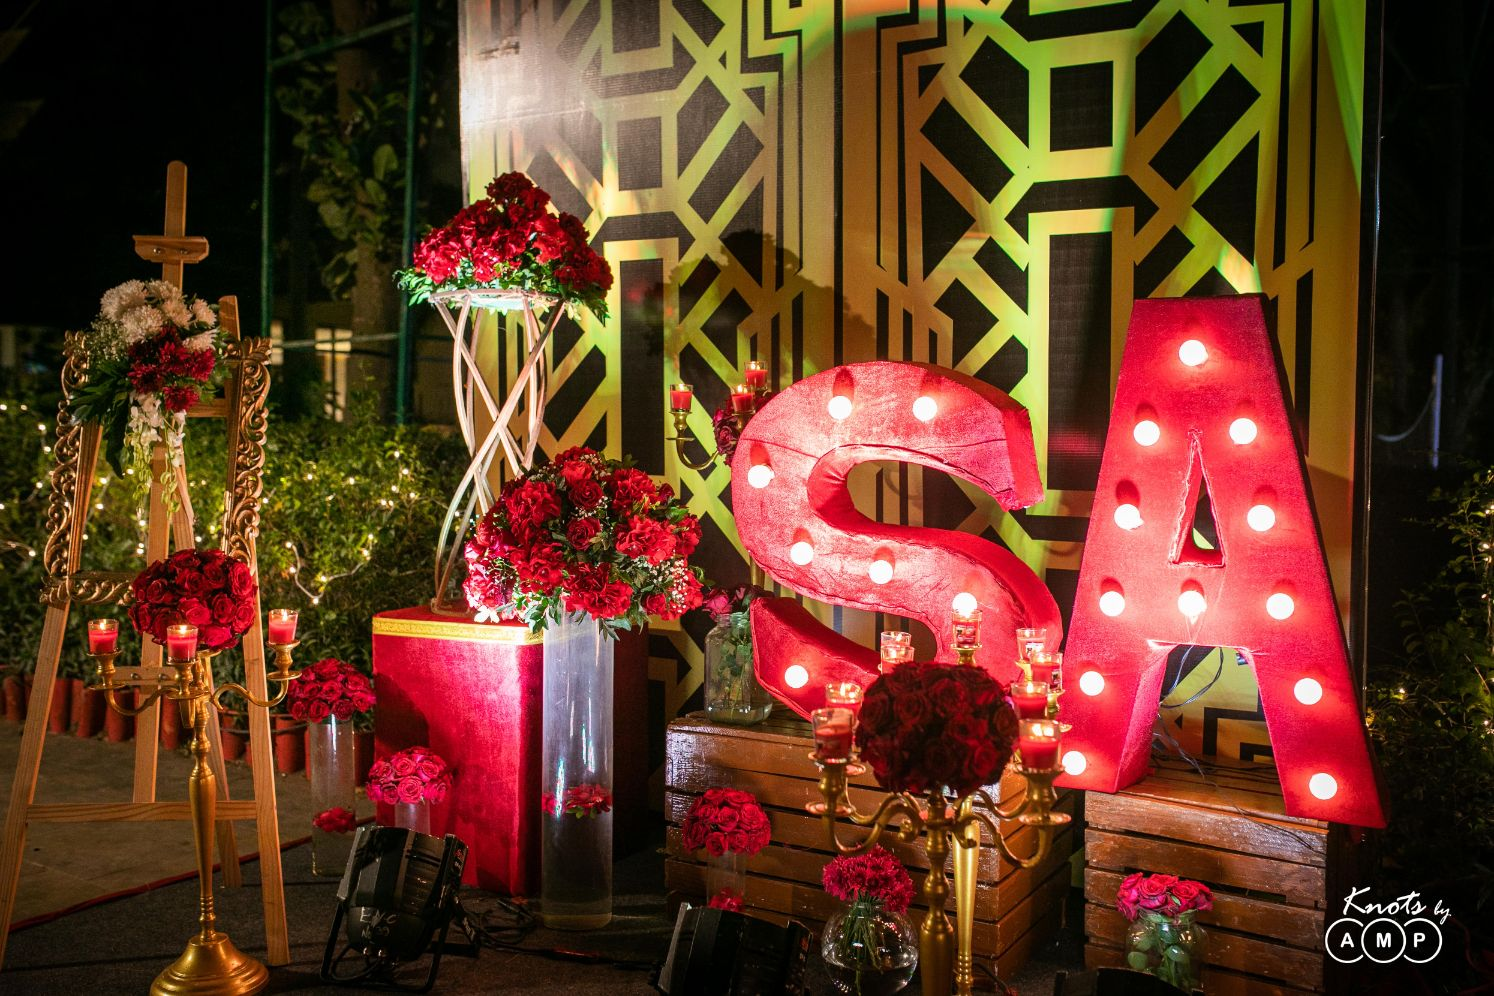 Red Roses Decor with Couple's Initials LED Lit Signage